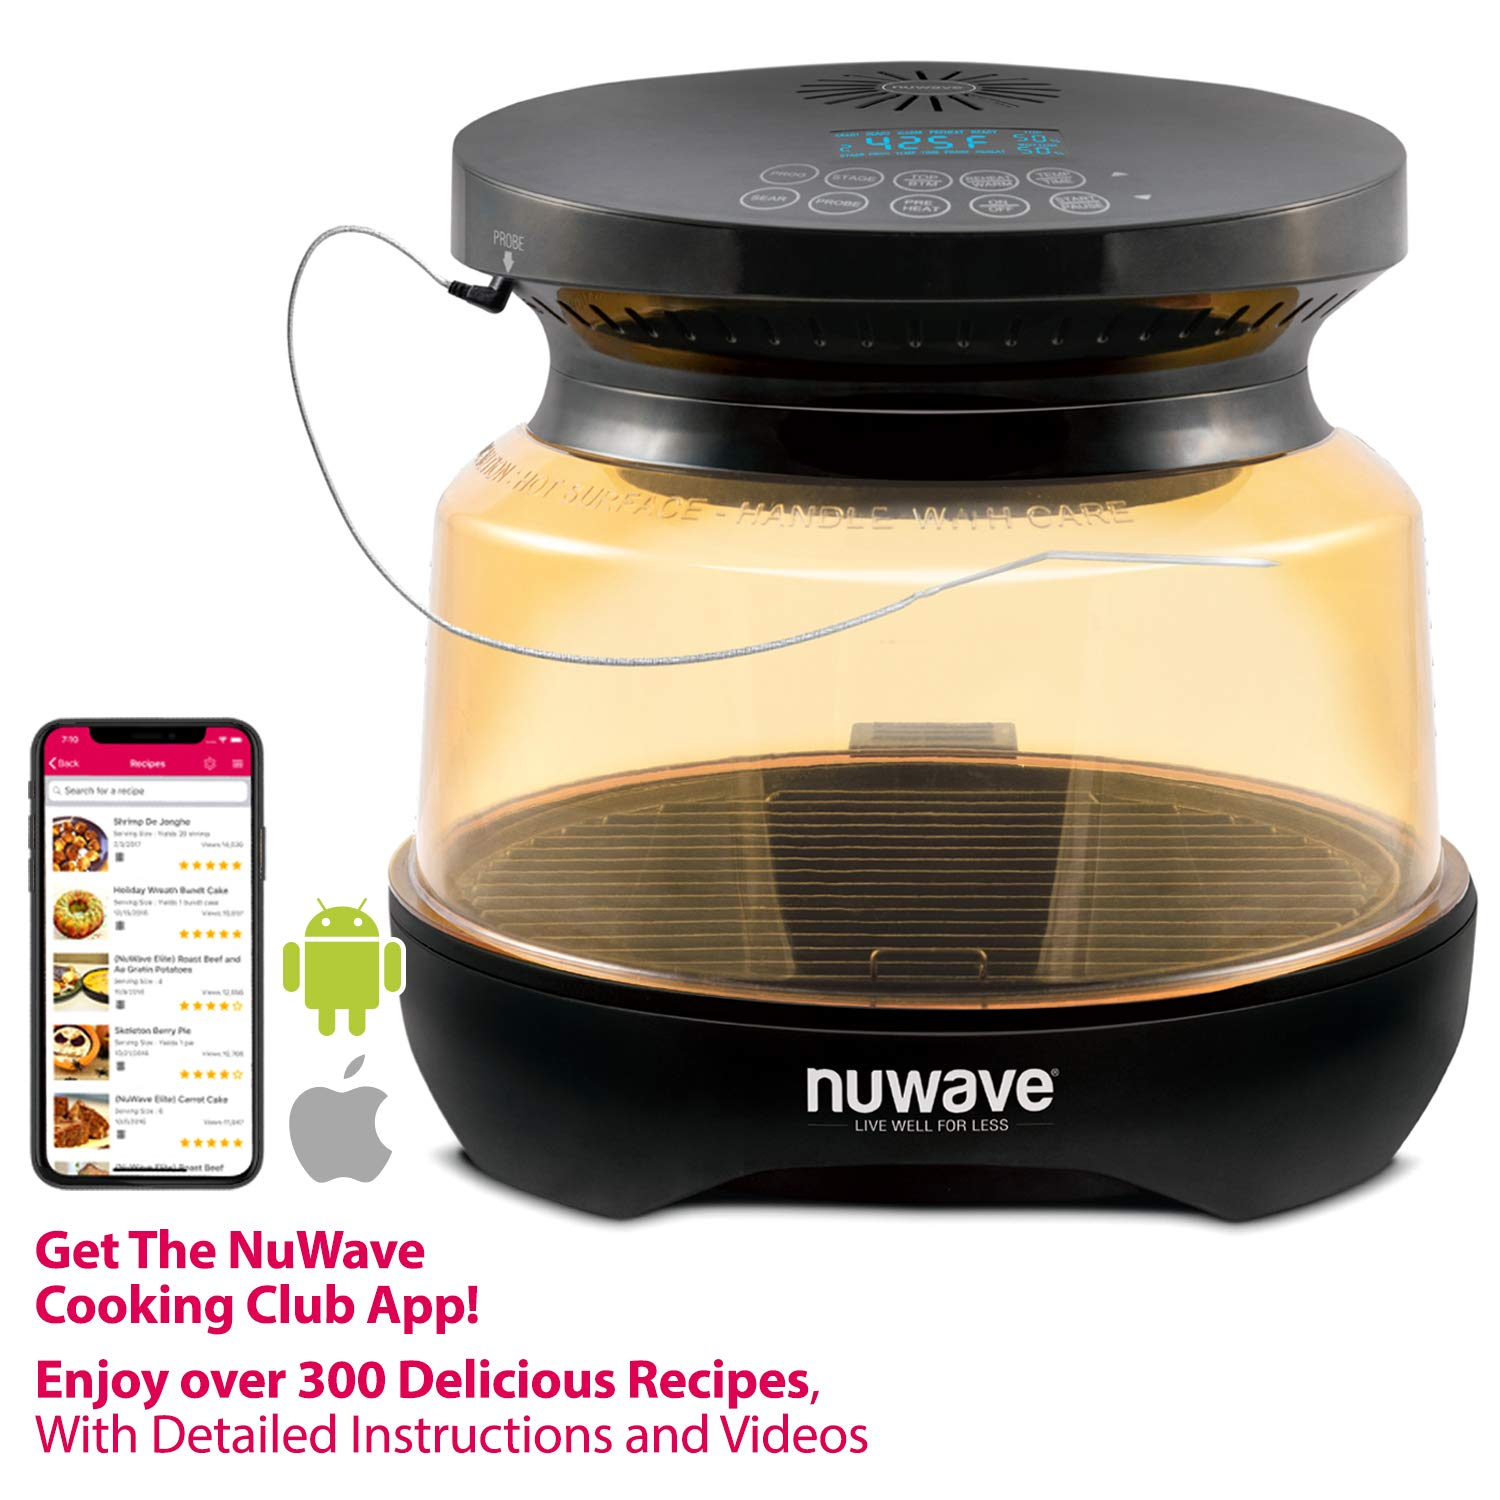 NUWAVE PRIMO Infrared Grill Oven with Integrated Digital Temp Probe for PERFECT Results; Convection Top & Grill Bottom for Surround Cooking; High Heat Resistant PPSU Dome and Enhanced Base Tray Coating; Cook Frozen or Fresh; Broil, Roast, Grill, Bake, Dehydrate & Air Fry